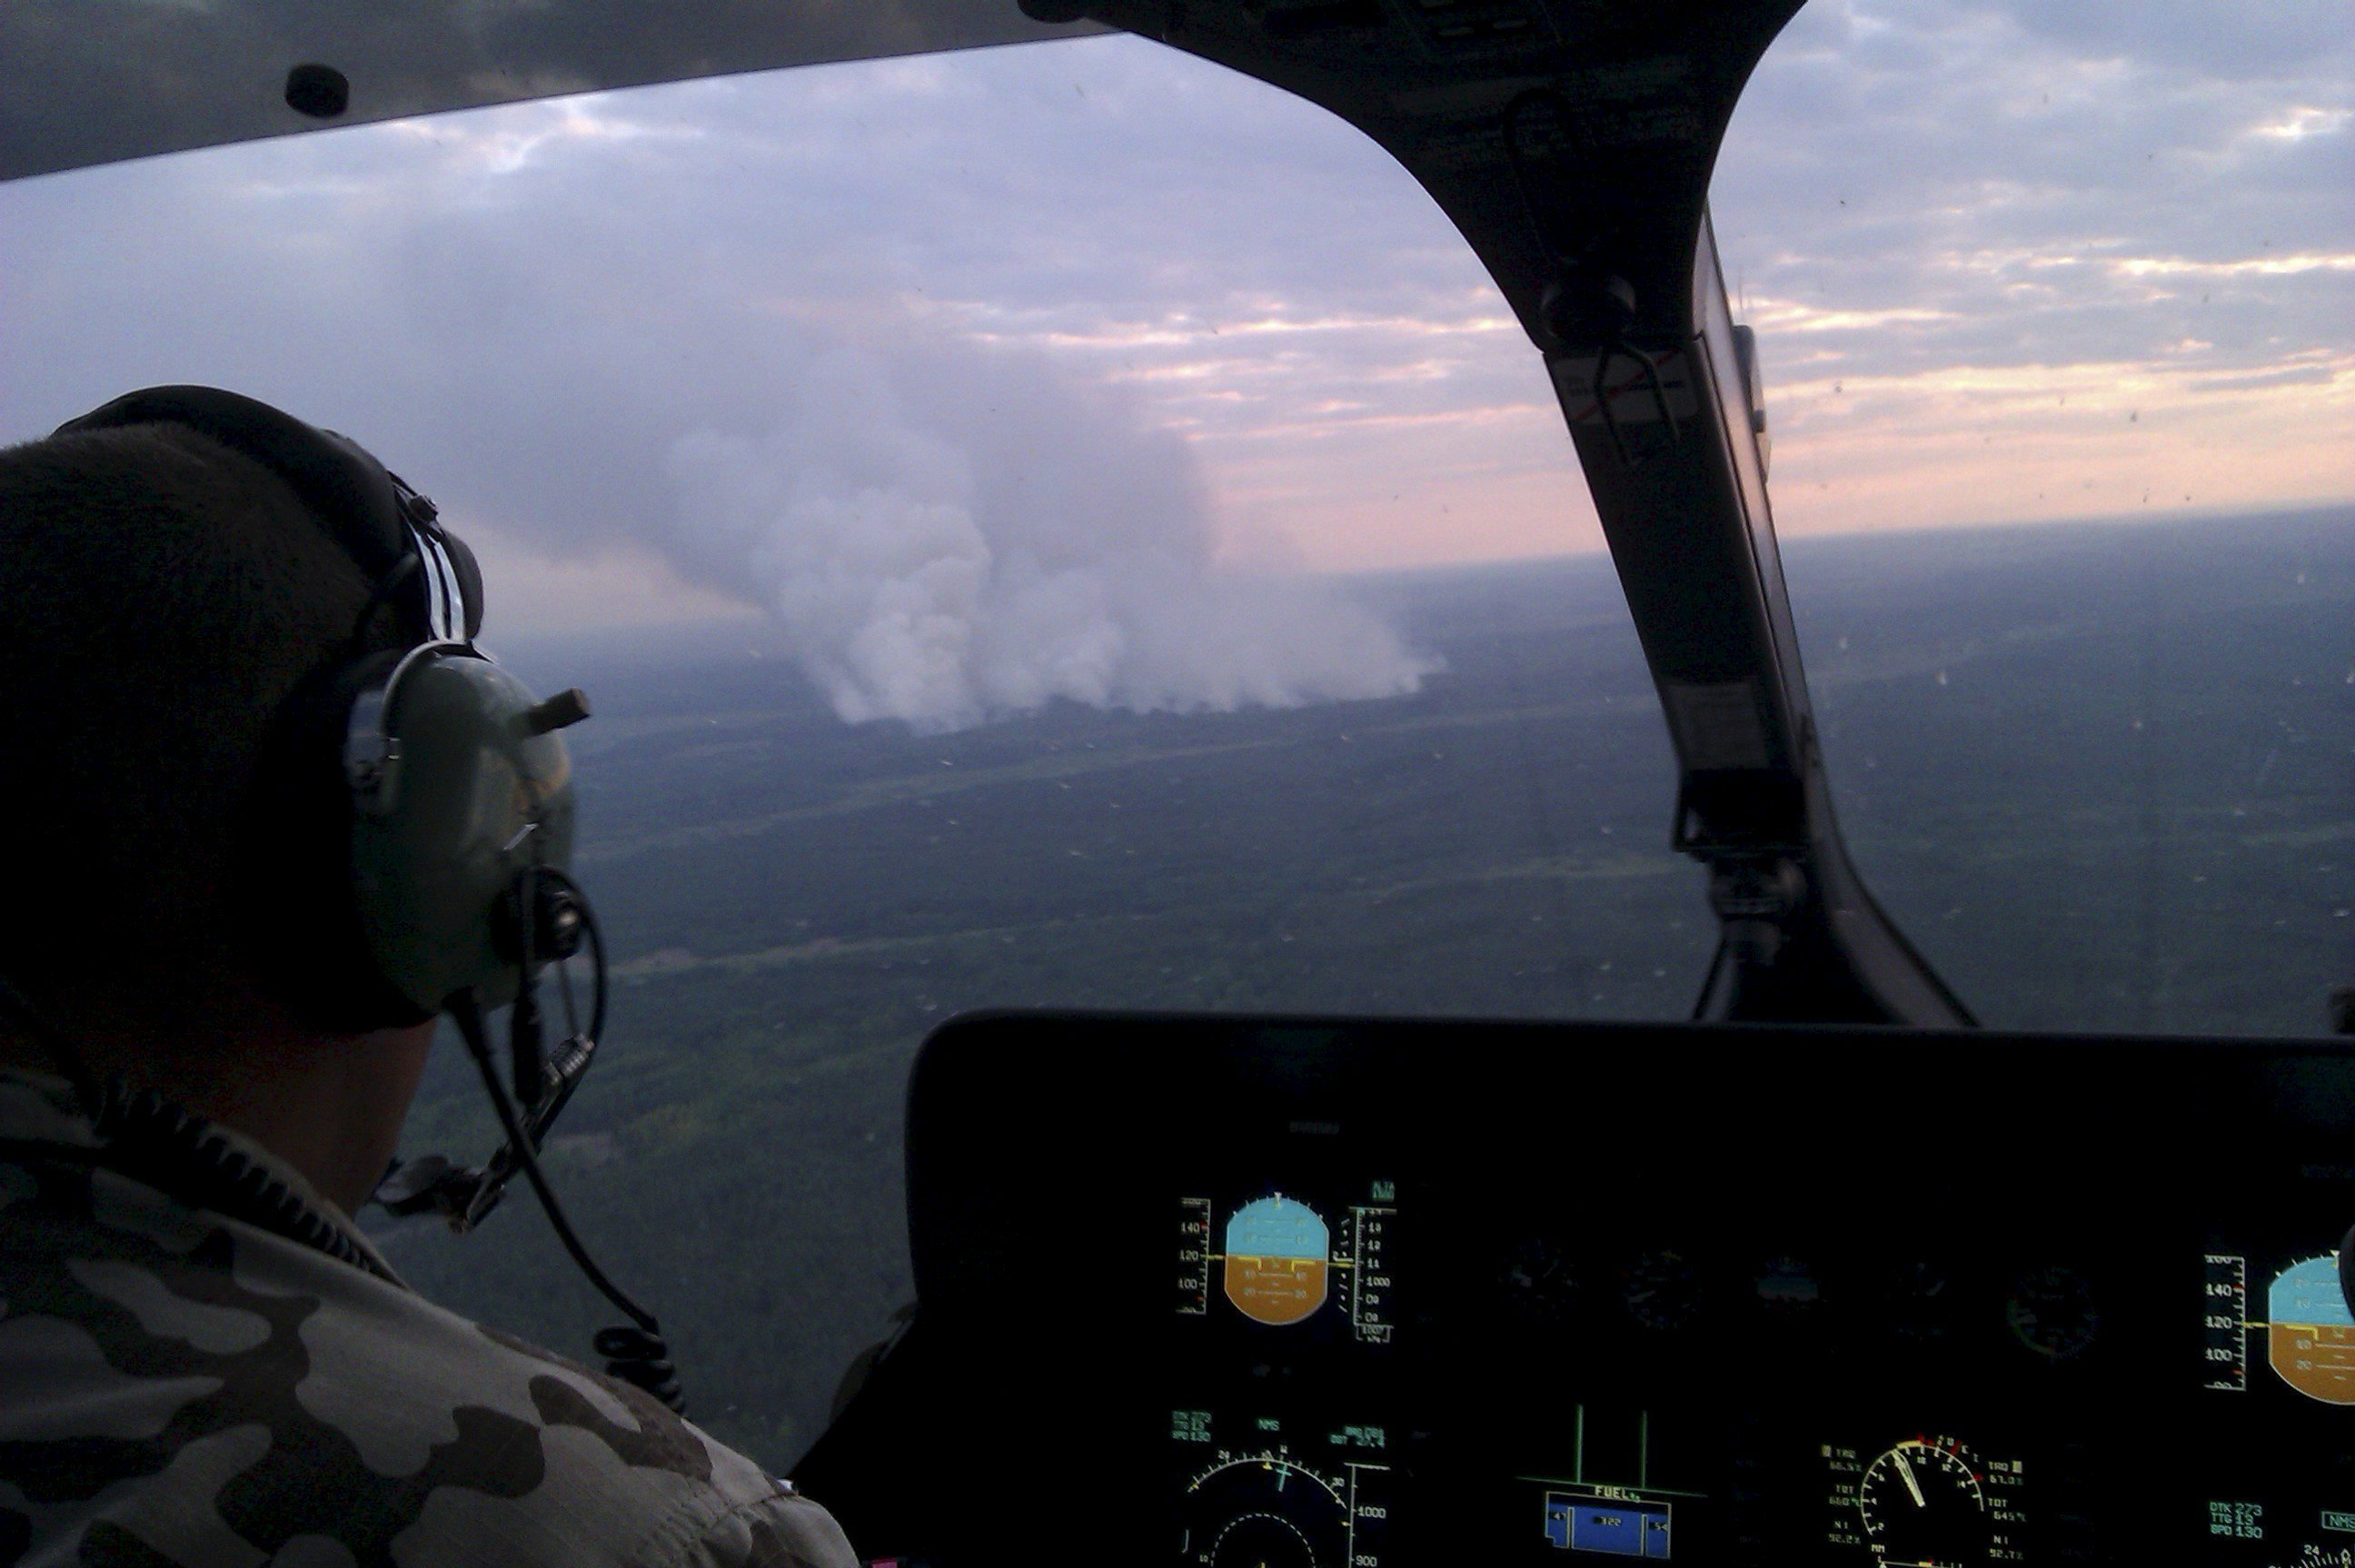 An aerial view from a helicopter shows smoke from forest fires some 40 km from Chernobyl nuclear power plant in Kiev region, northern Ukraine, June 29, 2015. Picture taken with a mobile phone on June 29, 2015